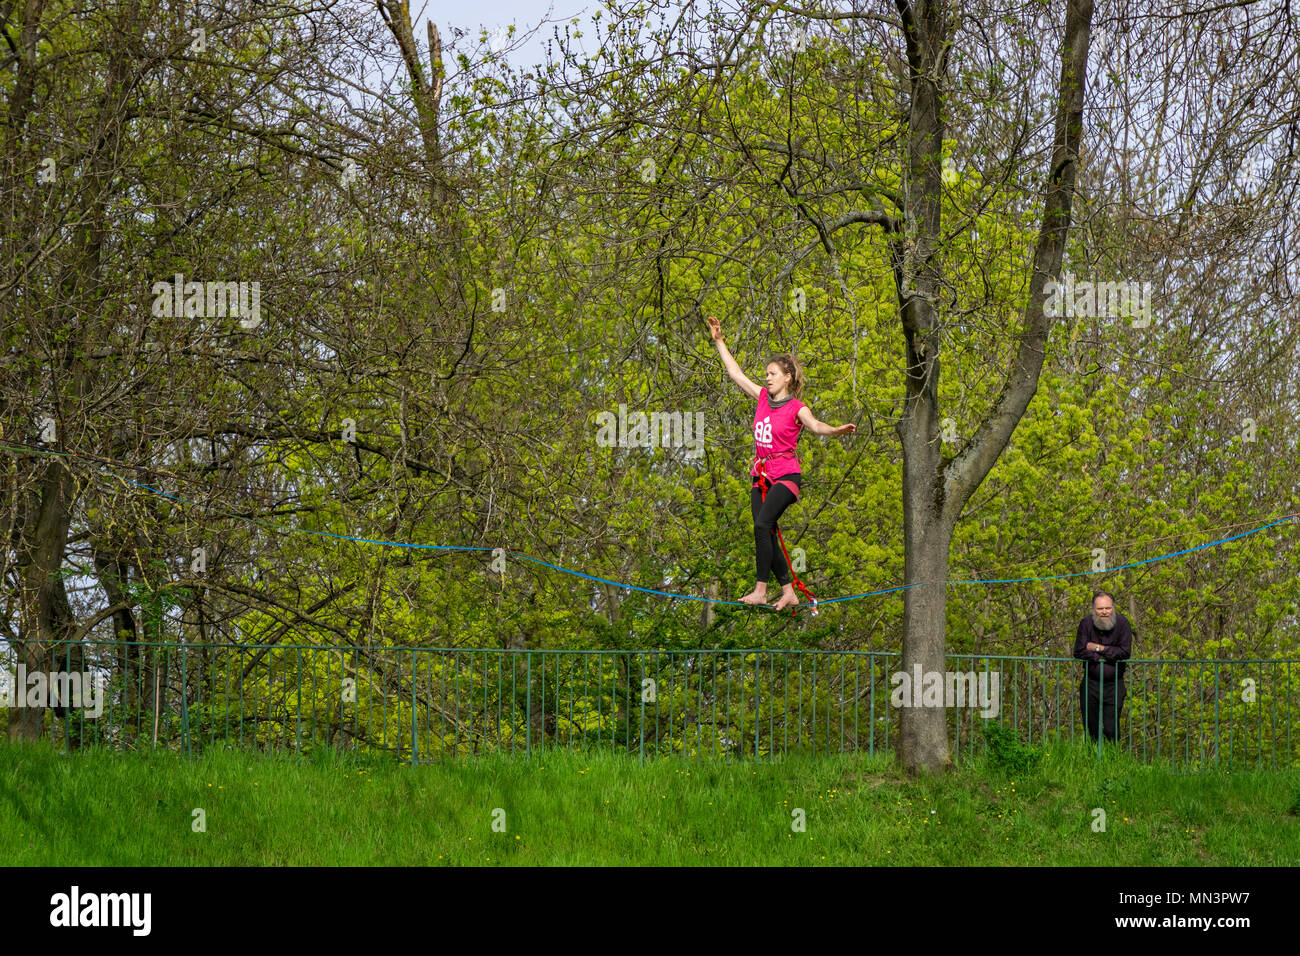 Young female tightrope walker walking on a slackline suspended in the air in a park, Strasbourg, France. - Stock Image